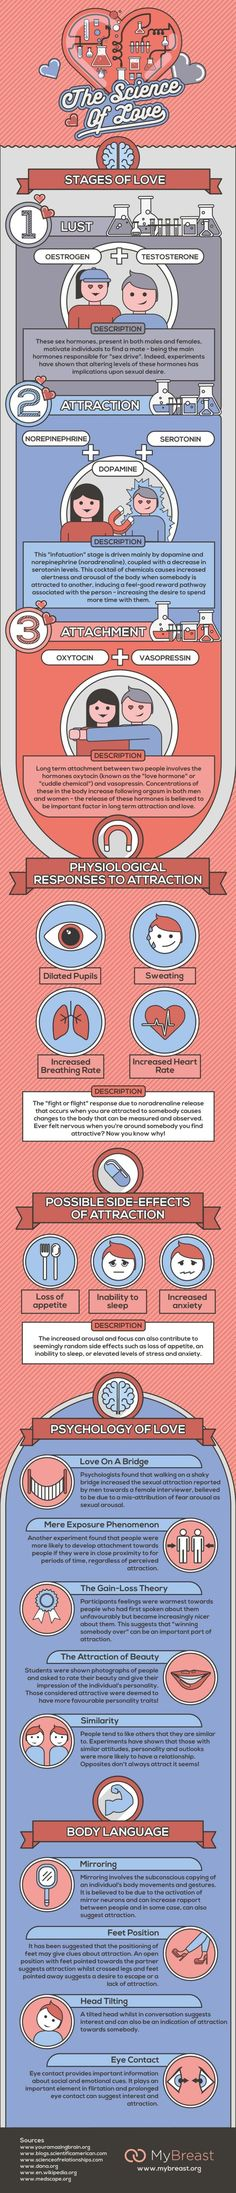 The science of love #Infographic #DatingAndLove